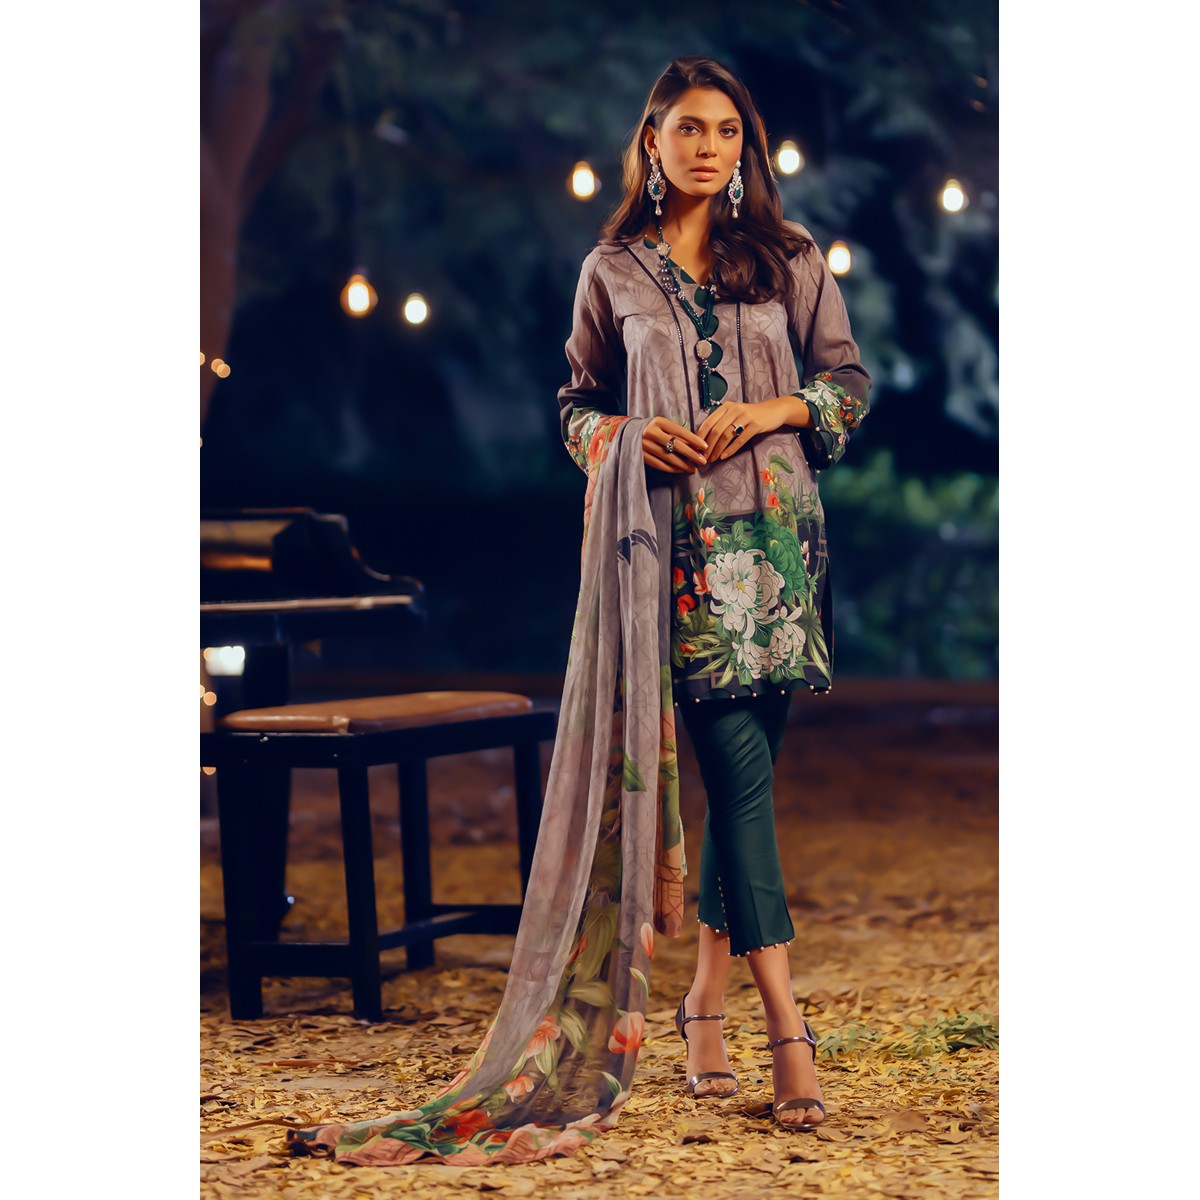 Maahru Koh-e-Noor - Women's Unstitched 3PC Summer Printed Lawn Suit with Chiffon Dupatta